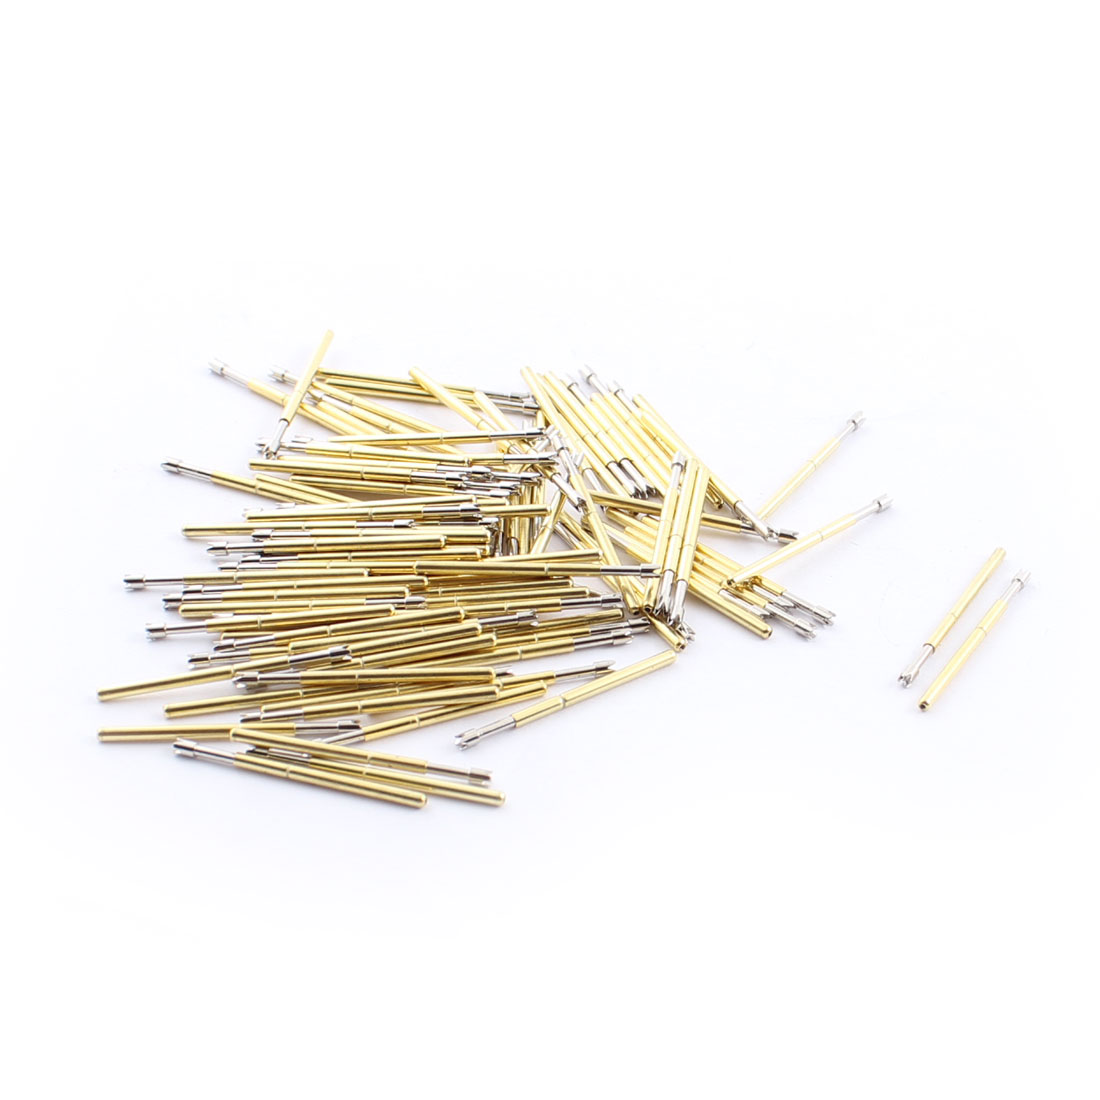 100pcs P160Q2 1.5mm Dia 4-Pointed Crown Tip 24.5mm Length Metal Spring Test Probes Testing Pins Gold Tone for PCB Board Testing